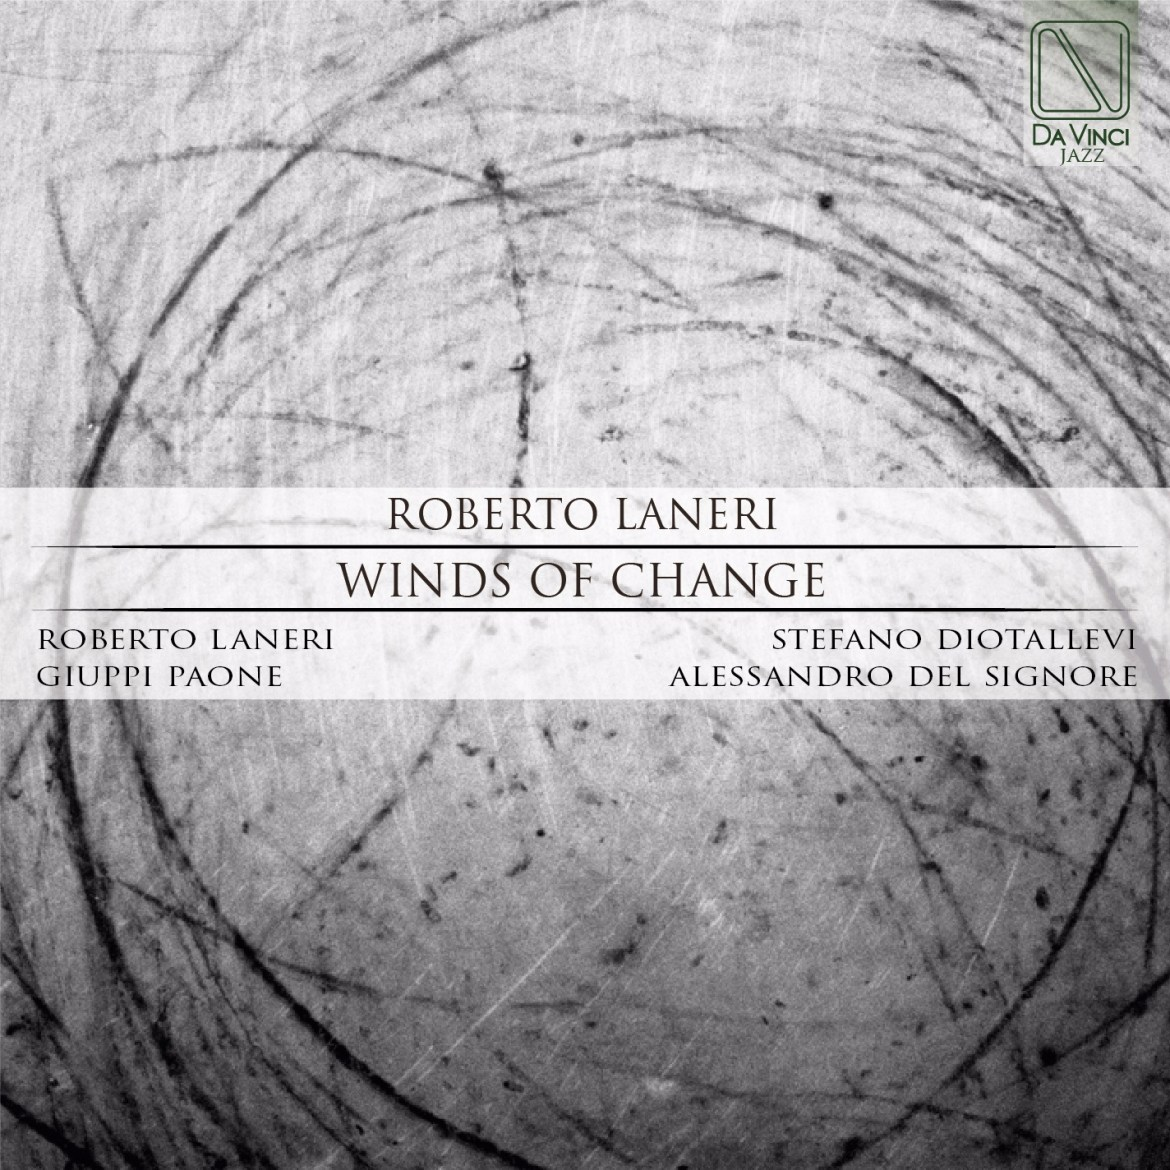 051 Winds of Change